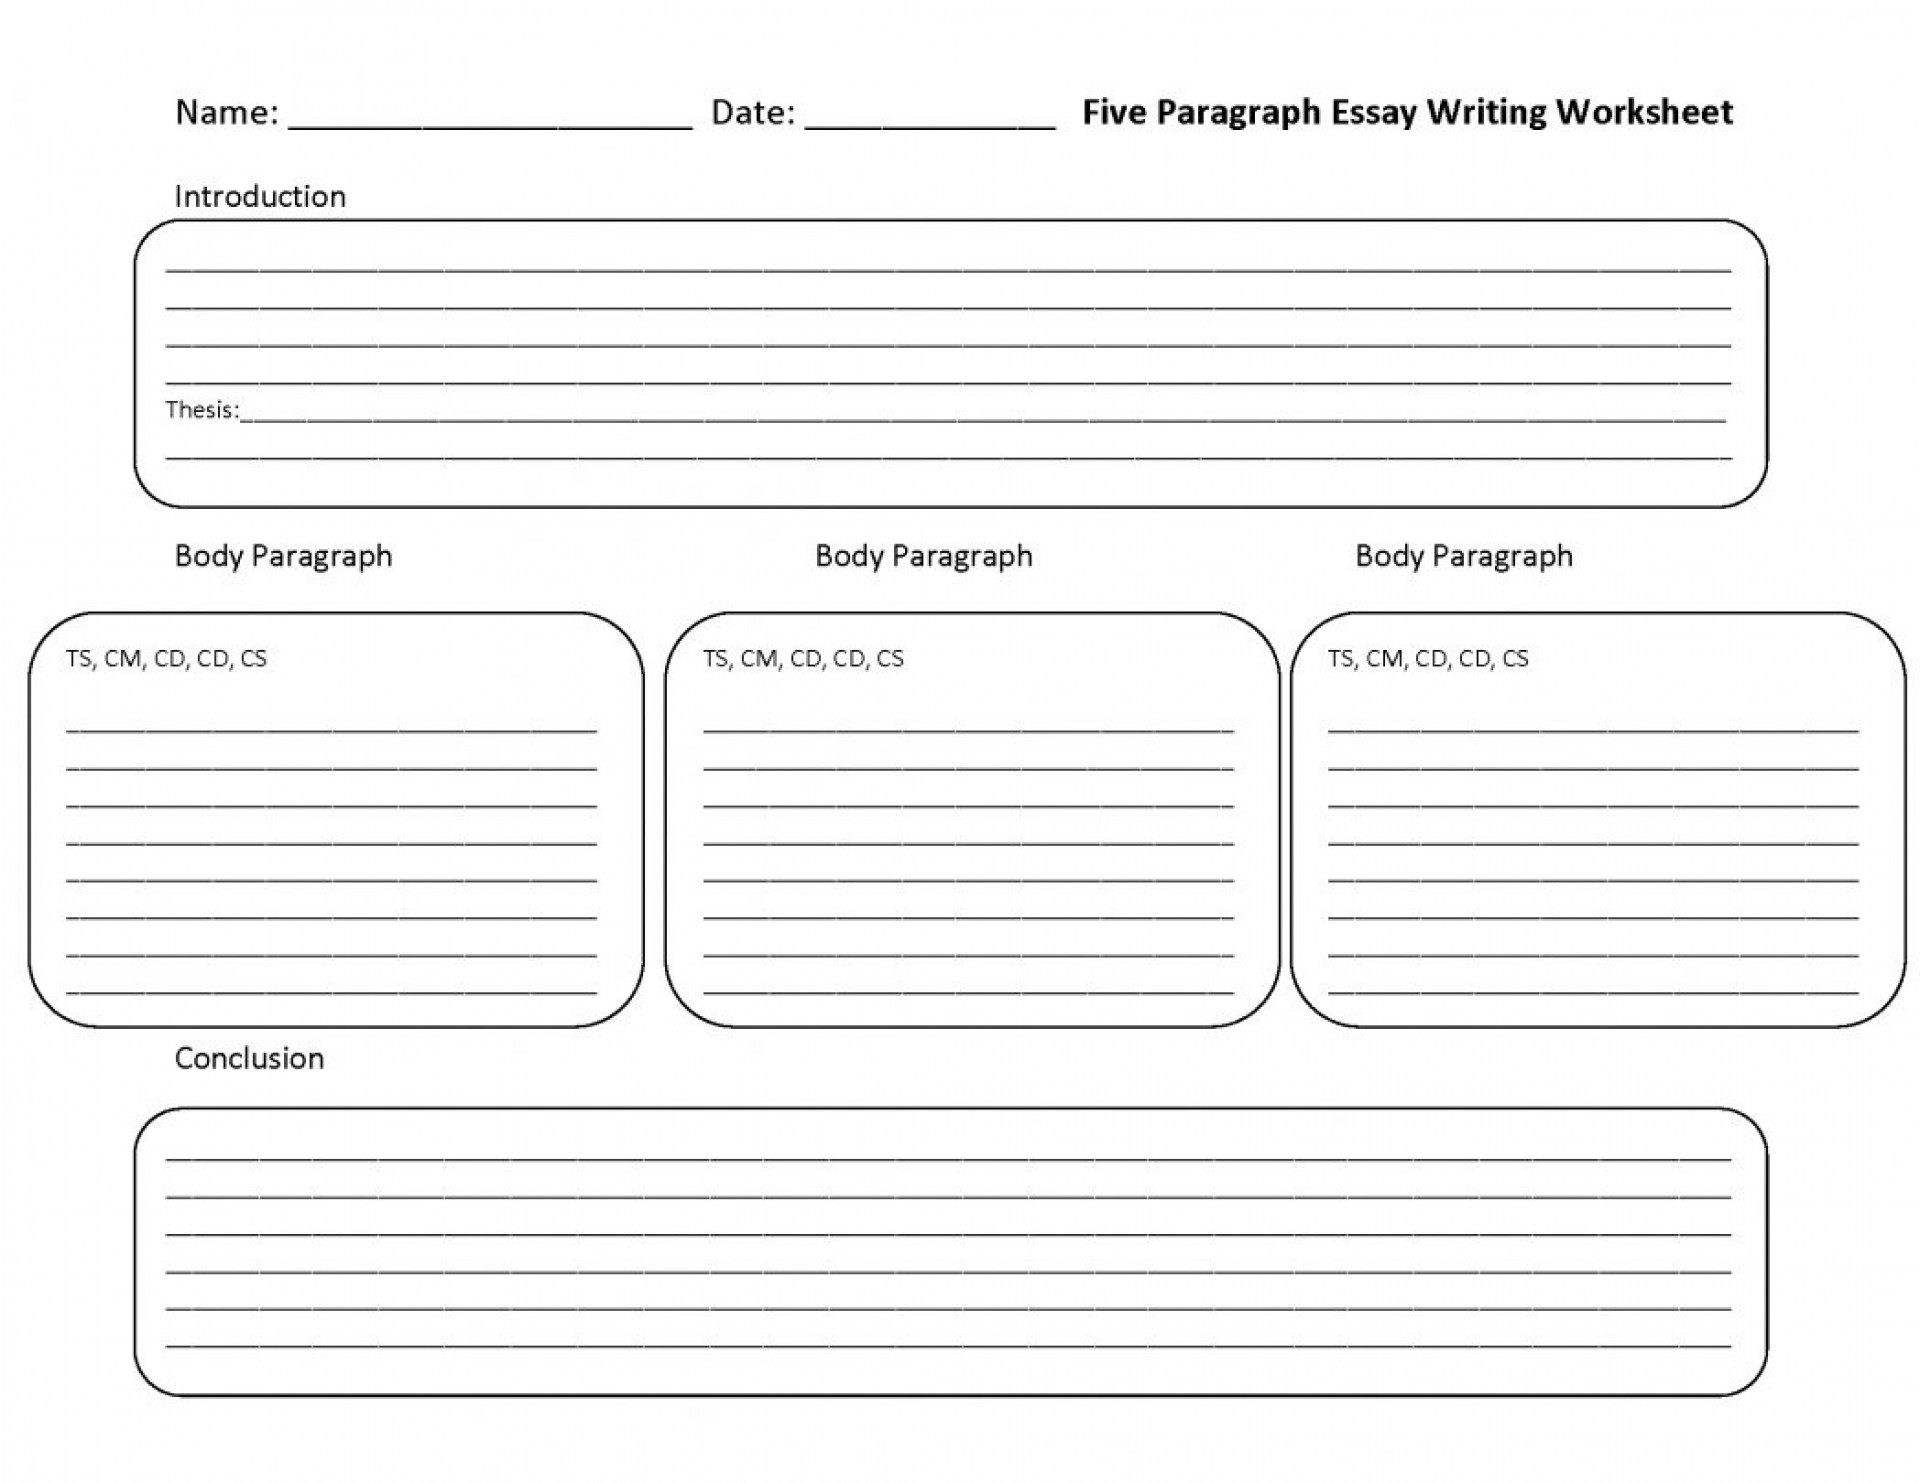 022 Essay Graphic Organizer Paragraph Poemsrom Co For Writing Literary Essays Worksheets Throughout Organizers College Informative Free Persuasive Best Descriptive Argumentative Incredible High School Pdf Common Core 1920